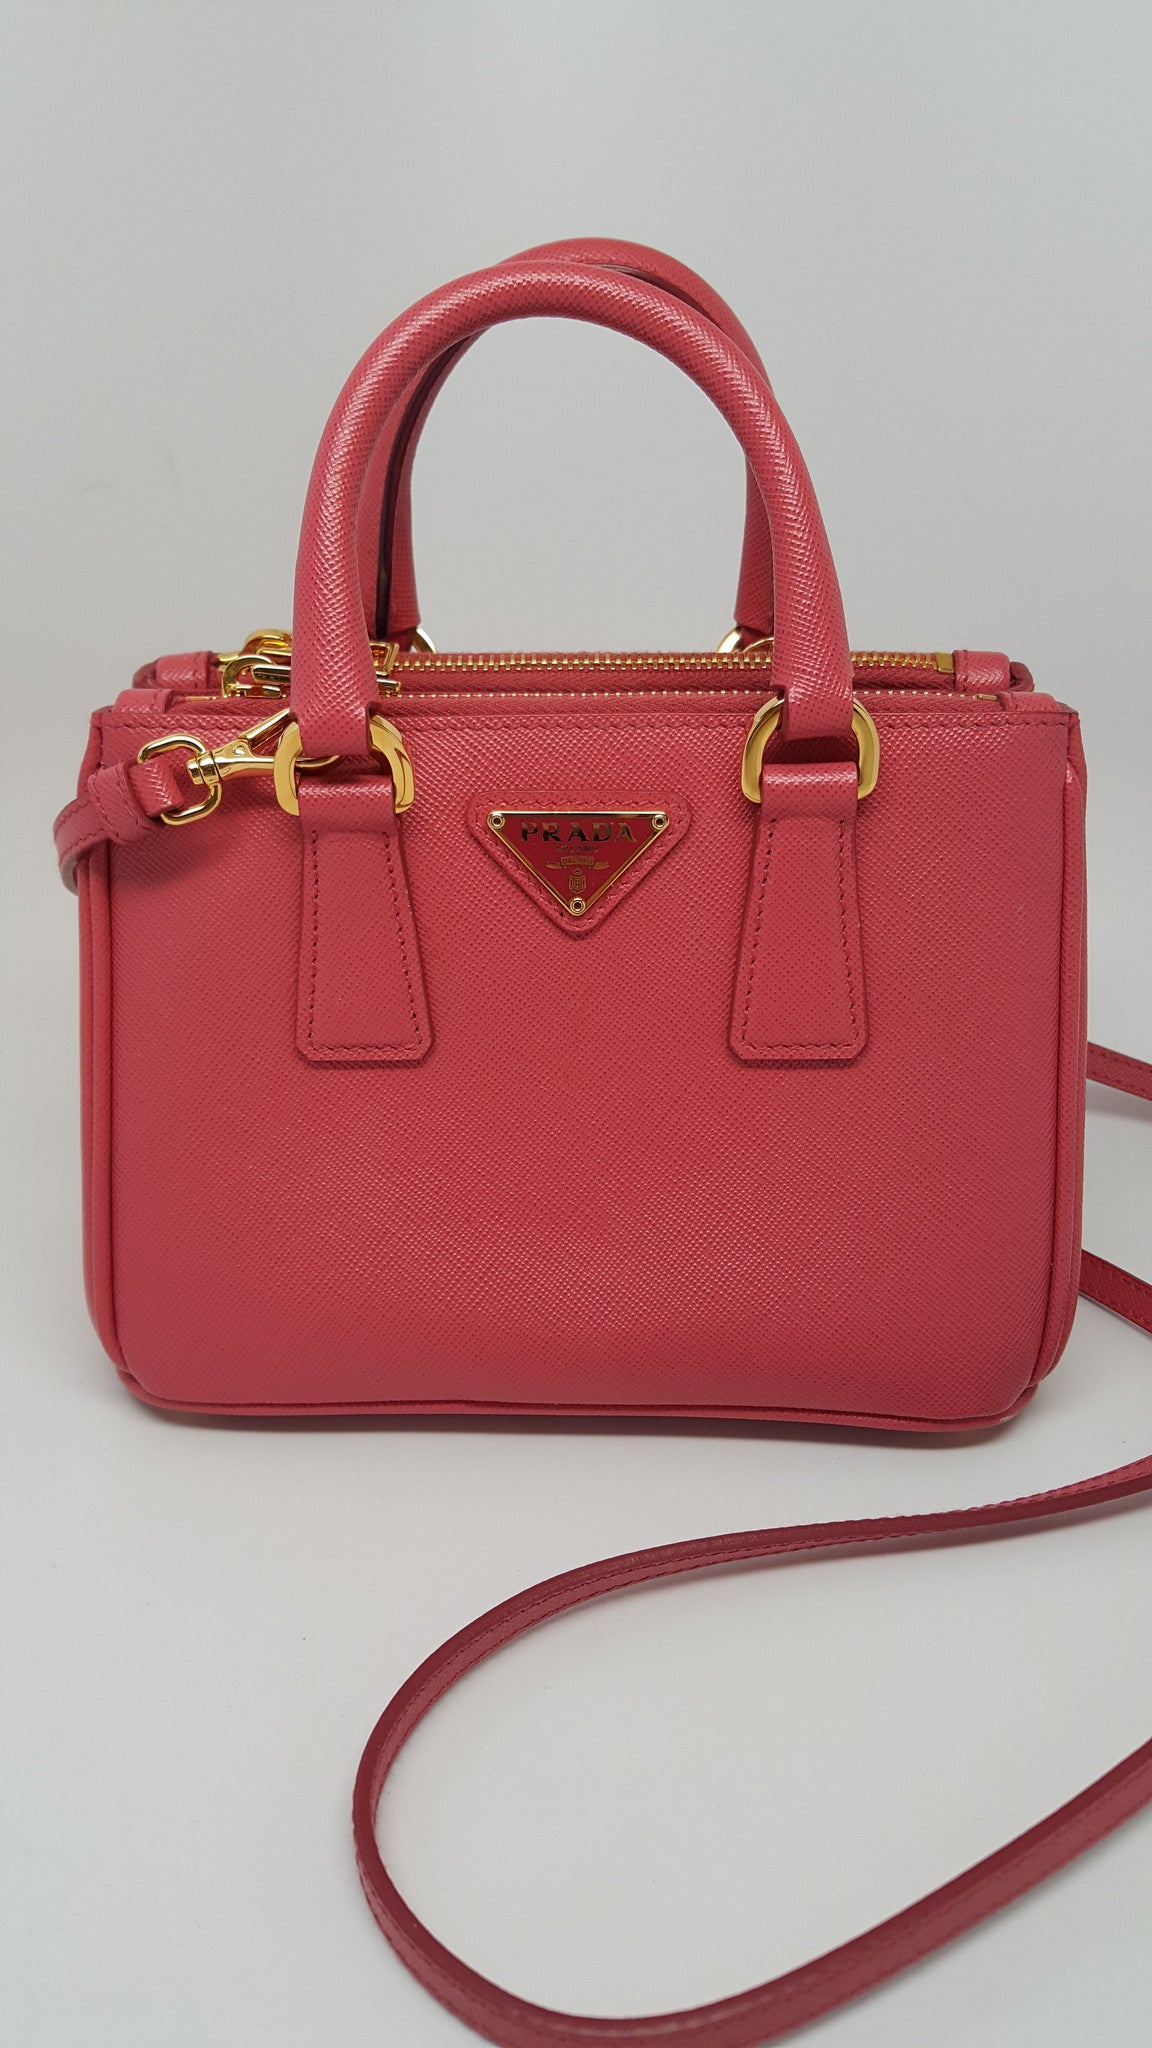 PRADA SAFFIANO LUX LEATHER NANO TOTE BAG BN2842 - PEONIA